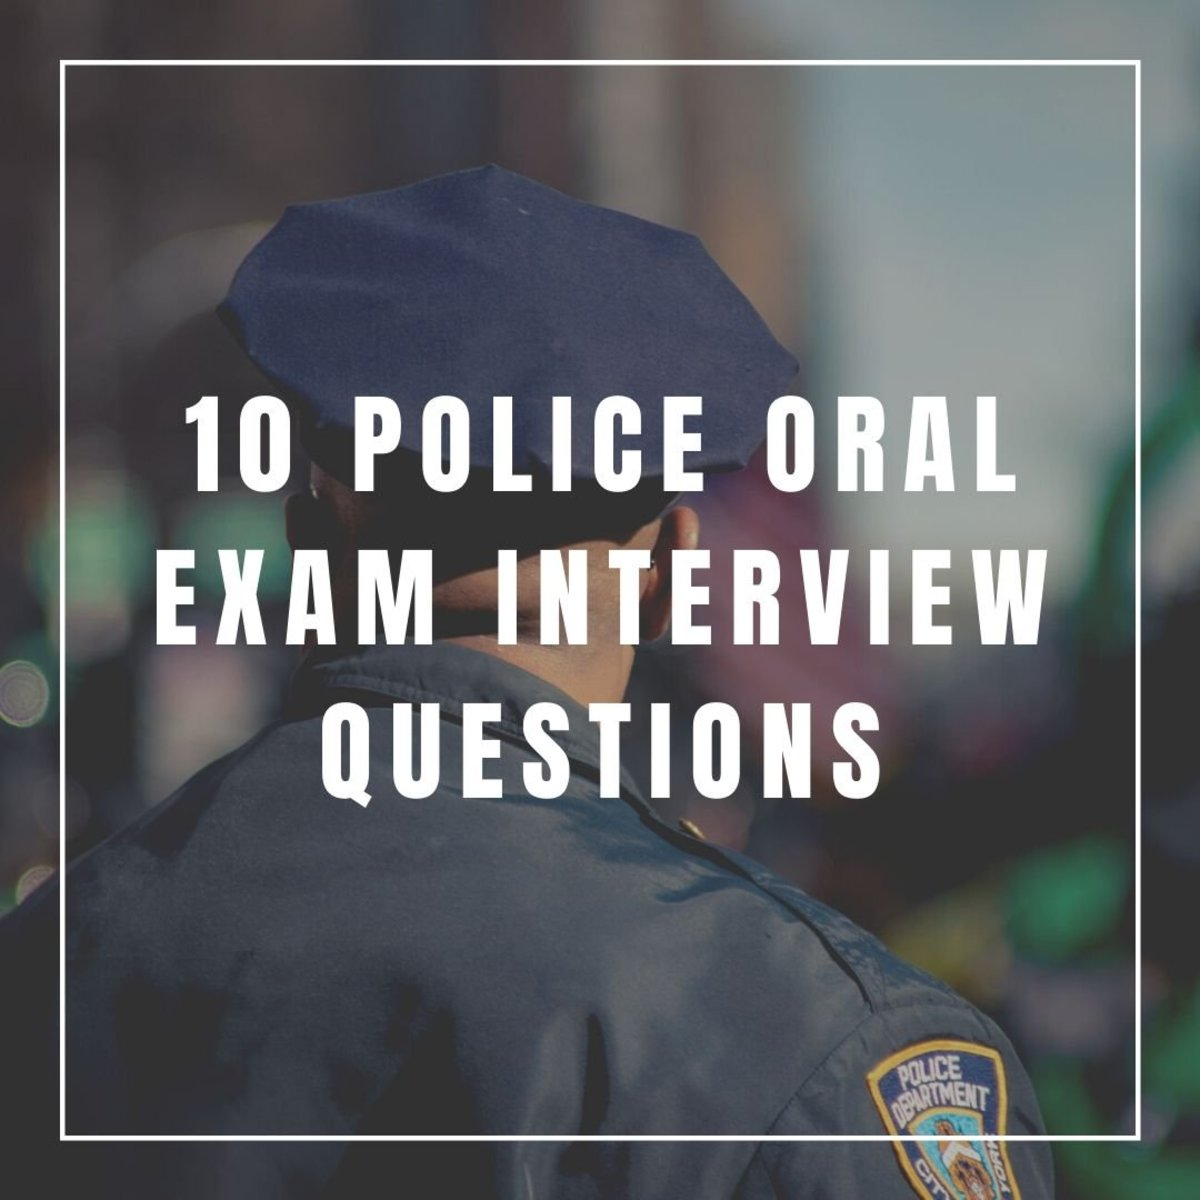 What sort of questions should you expect at a police oral exam interview?